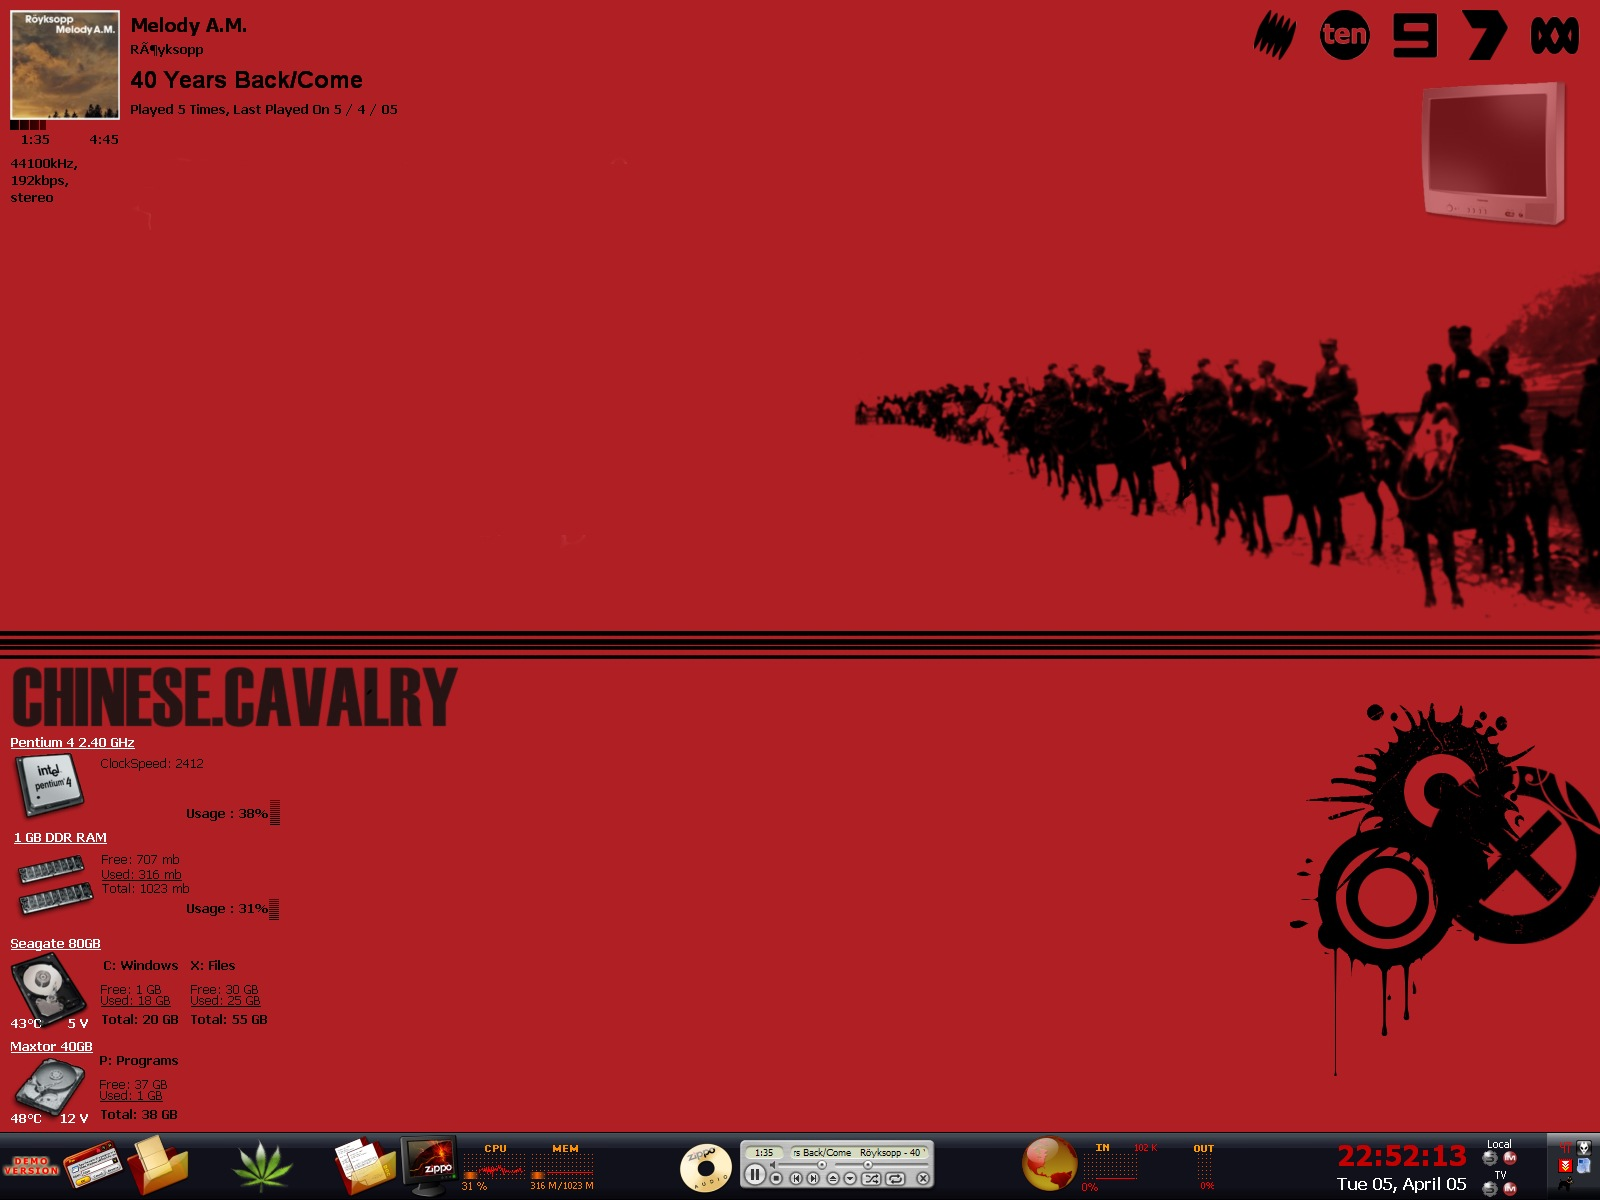 Title: Chinese Cavalry